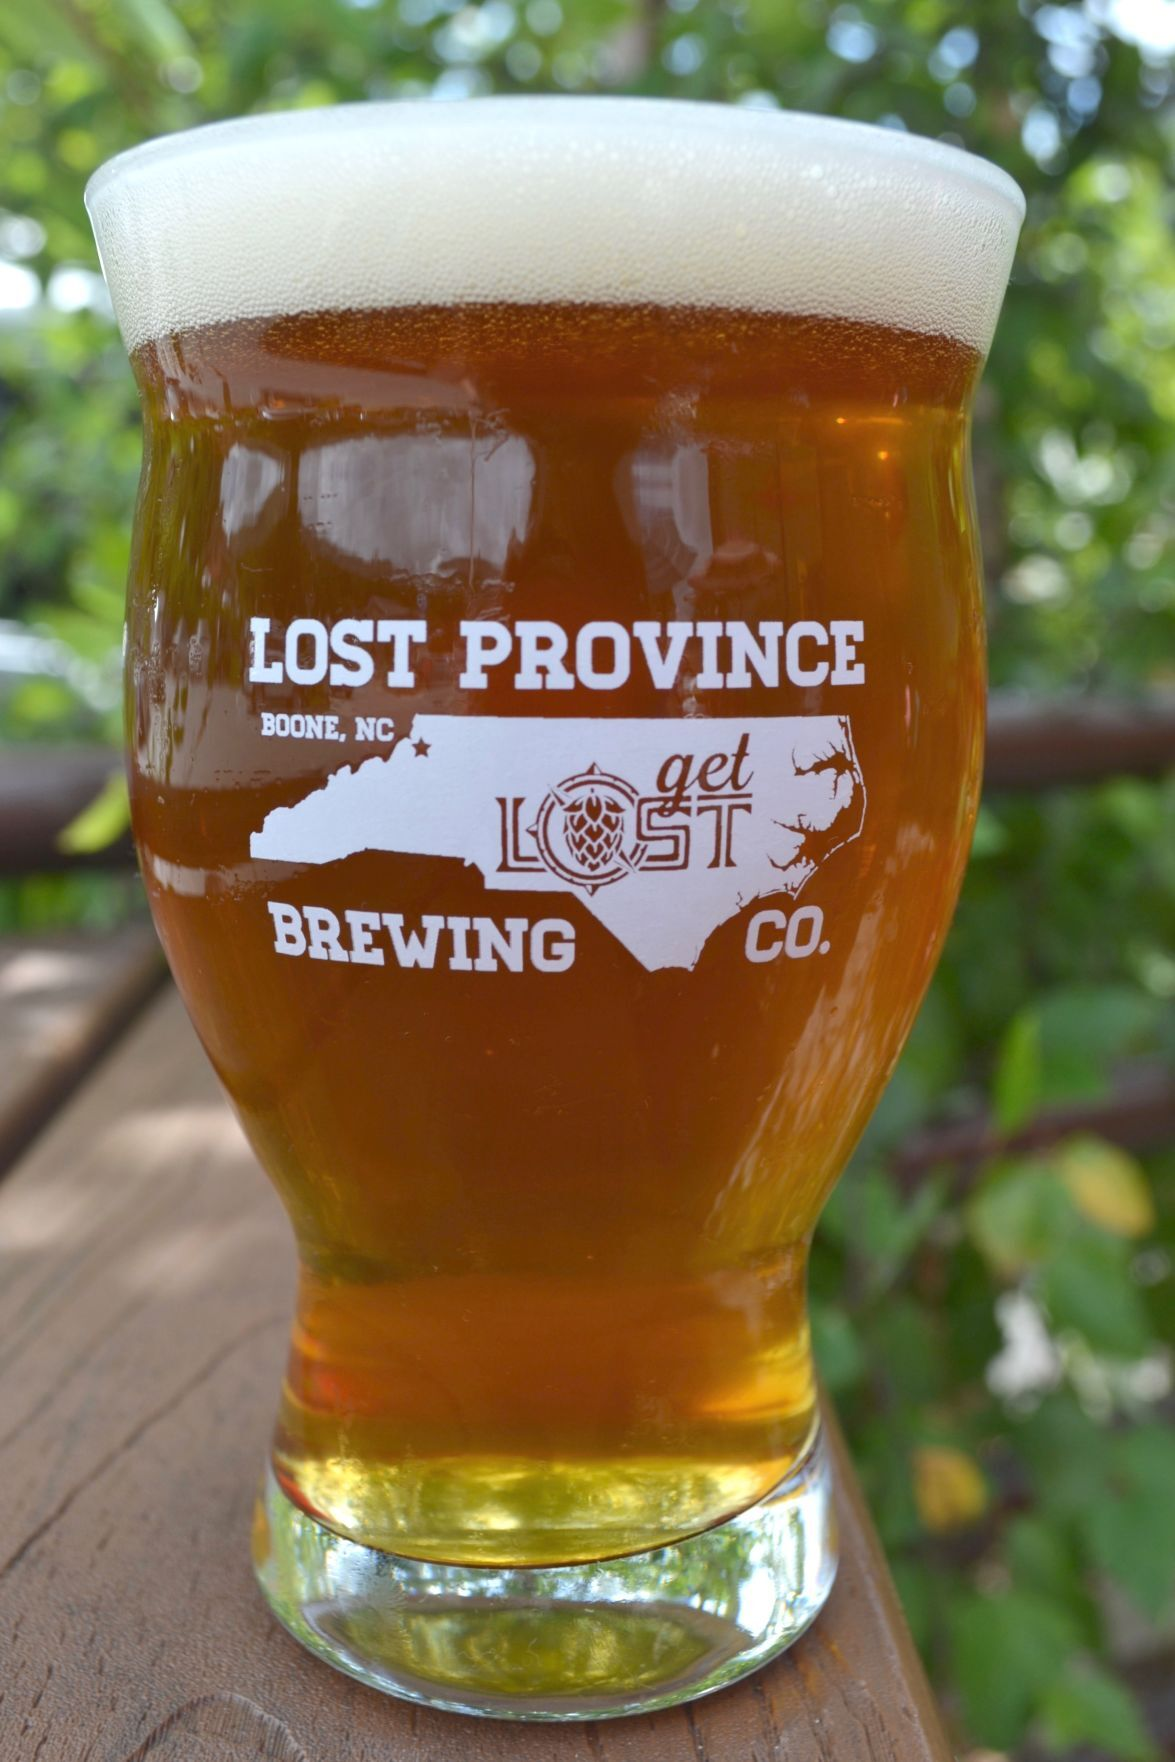 Lost Province beer